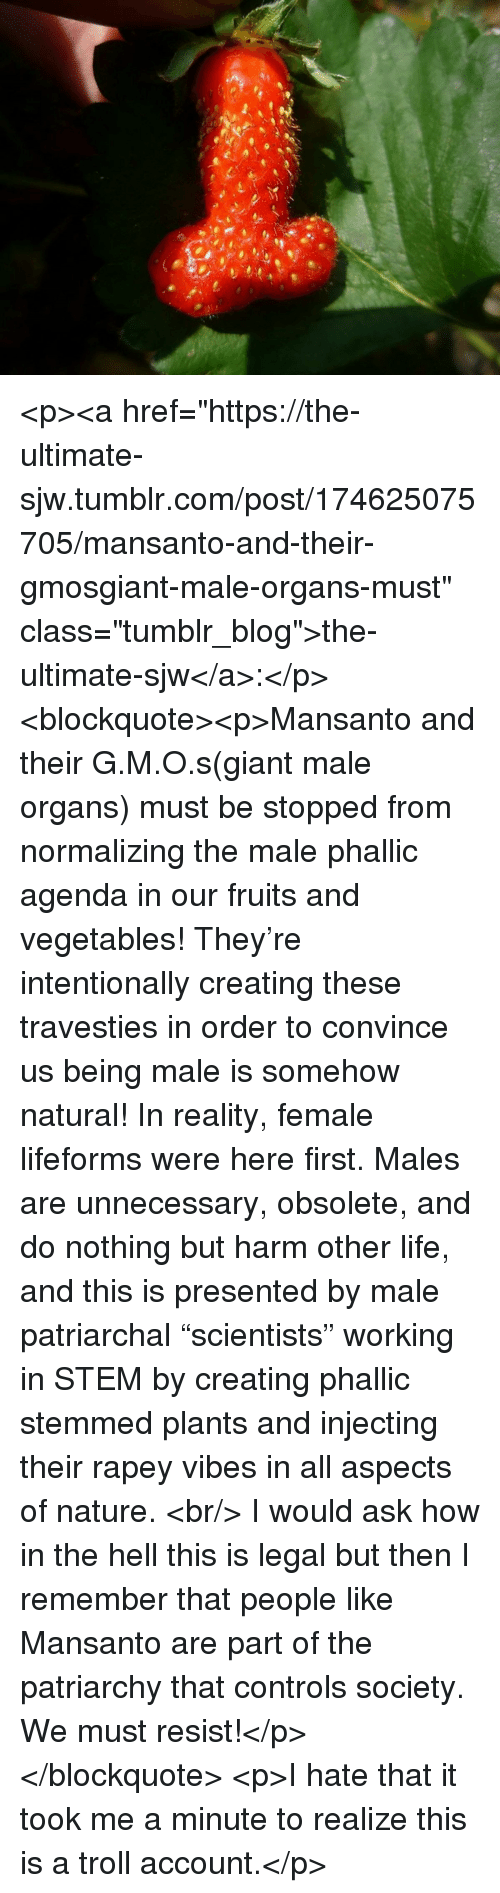 """Injecting: <p><a href=""""https://the-ultimate-sjw.tumblr.com/post/174625075705/mansanto-and-their-gmosgiant-male-organs-must"""" class=""""tumblr_blog"""">the-ultimate-sjw</a>:</p>  <blockquote><p>Mansanto and their G.M.O.s(giant male organs) must be stopped from normalizing the male phallic agenda in our fruits and vegetables! They're intentionally creating these travesties in order to convince us being male is somehow natural! In reality, female lifeforms were here first. Males are unnecessary, obsolete, and do nothing but harm other life, and this is presented by male patriarchal """"scientists"""" working in STEM by creating phallic stemmed plants and injecting their rapey vibes in all aspects of nature. <br/> I would ask how in the hell this is legal but then I remember that people like Mansanto are part of the patriarchy that controls society. We must resist!</p></blockquote>  <p>I hate that it took me a minute to realize this is a troll account.</p>"""